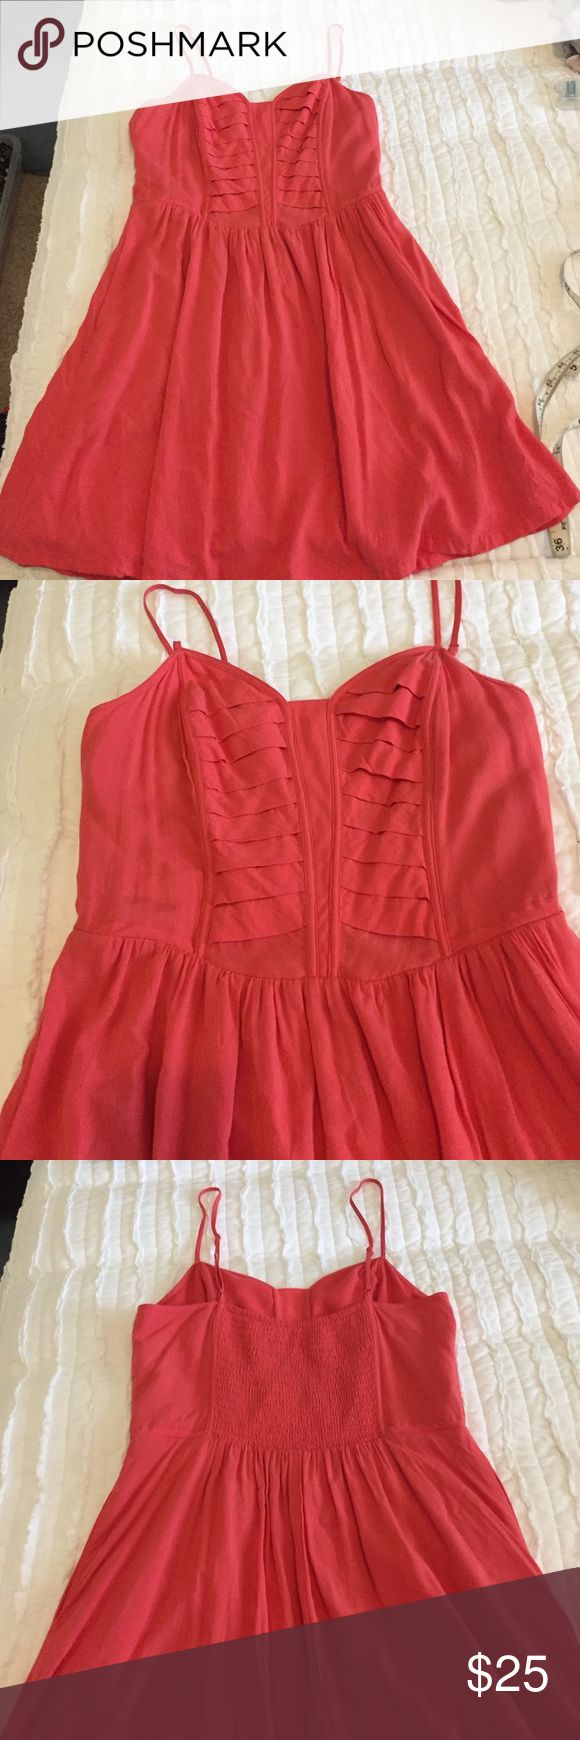 BCBGeneration Dress BCBGeneration coral colored dress. Adjustable straps, pockets, fully lined, fitted bodice for fit and flair fit. Some of the lining inside the bust has pulled away away but it does not affect the The fit or the dresses seeming in anyway. BCBGeneration Dresses